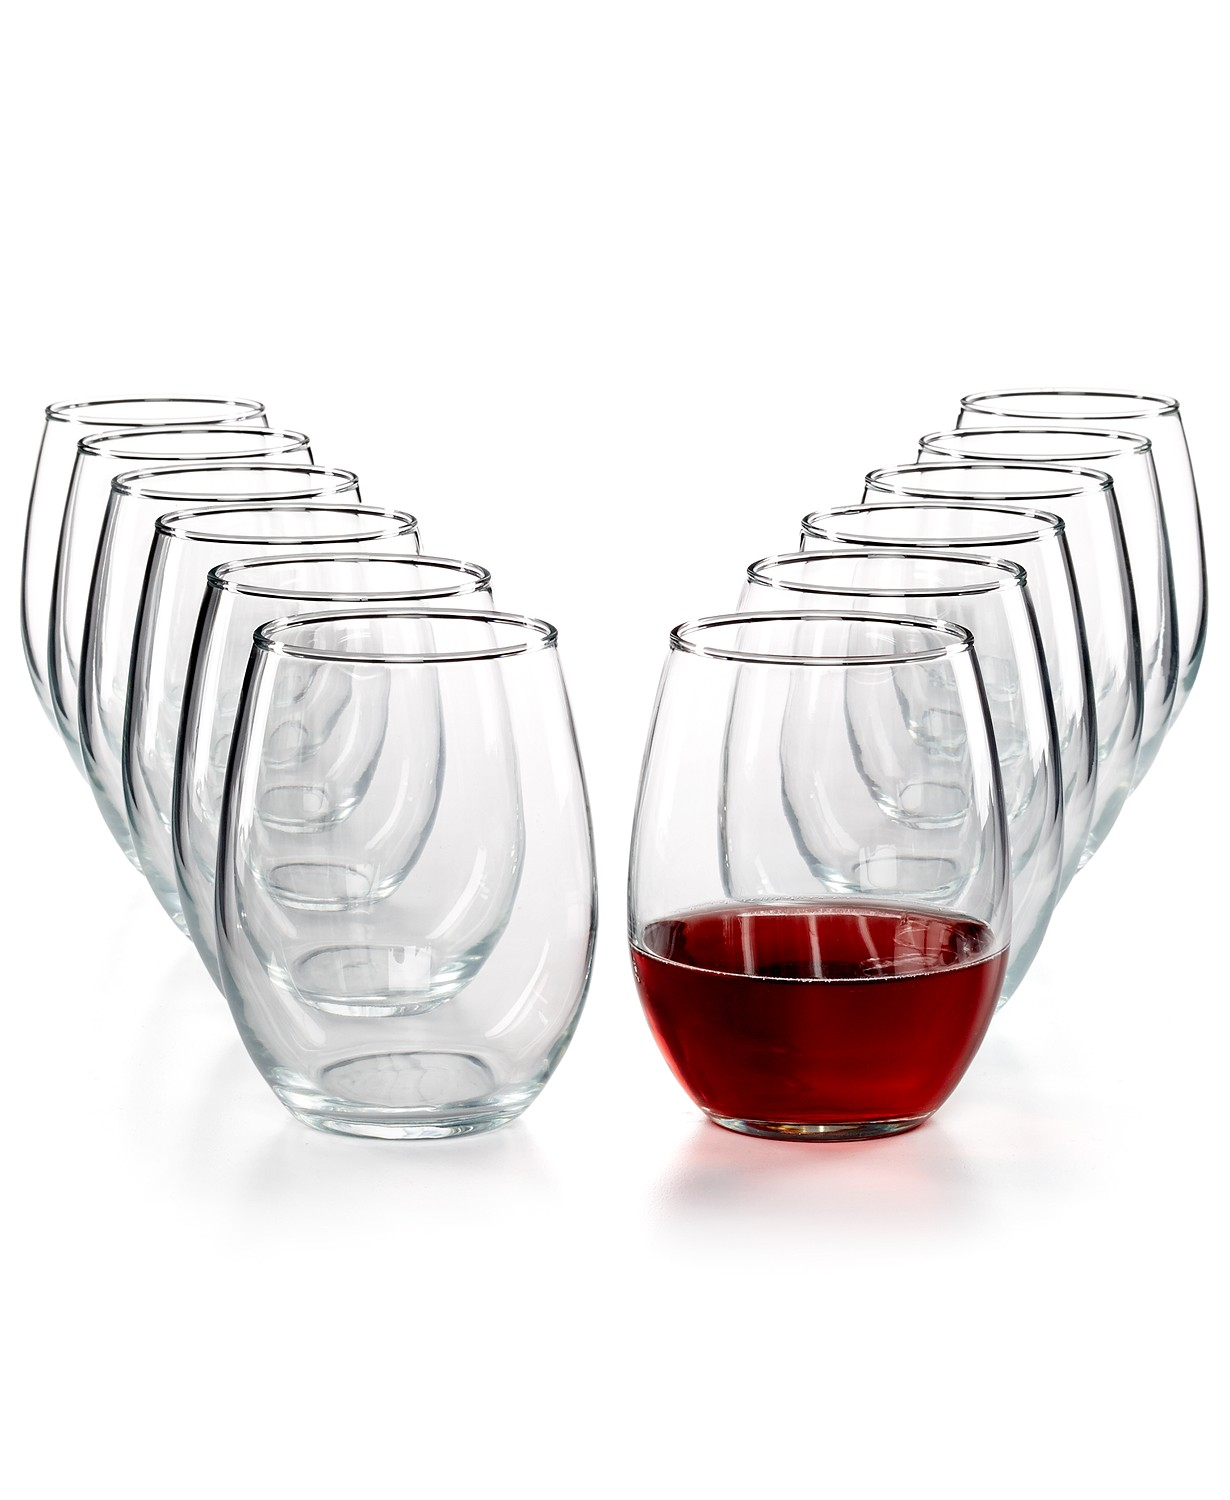 Martha Stewart Essentials 12-Pc. Stemless Wine Glasses Set